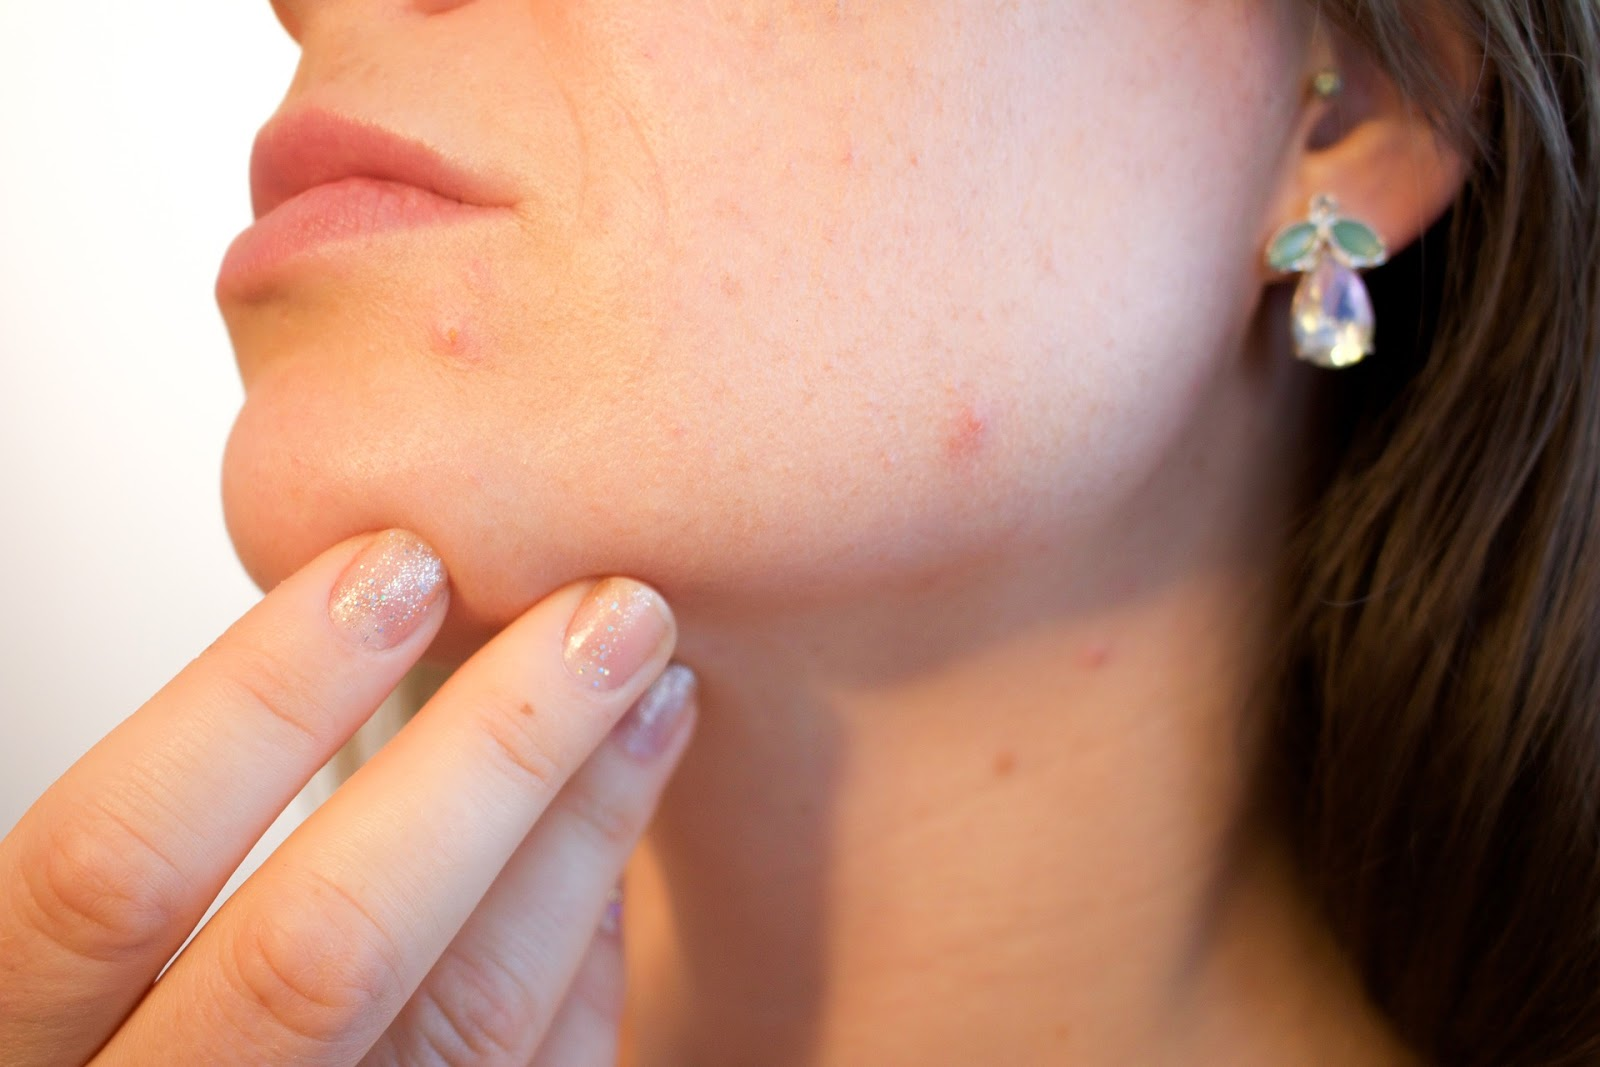 8 QUICK REMEDIES TO REMOVE PIMPLES FROM FACE